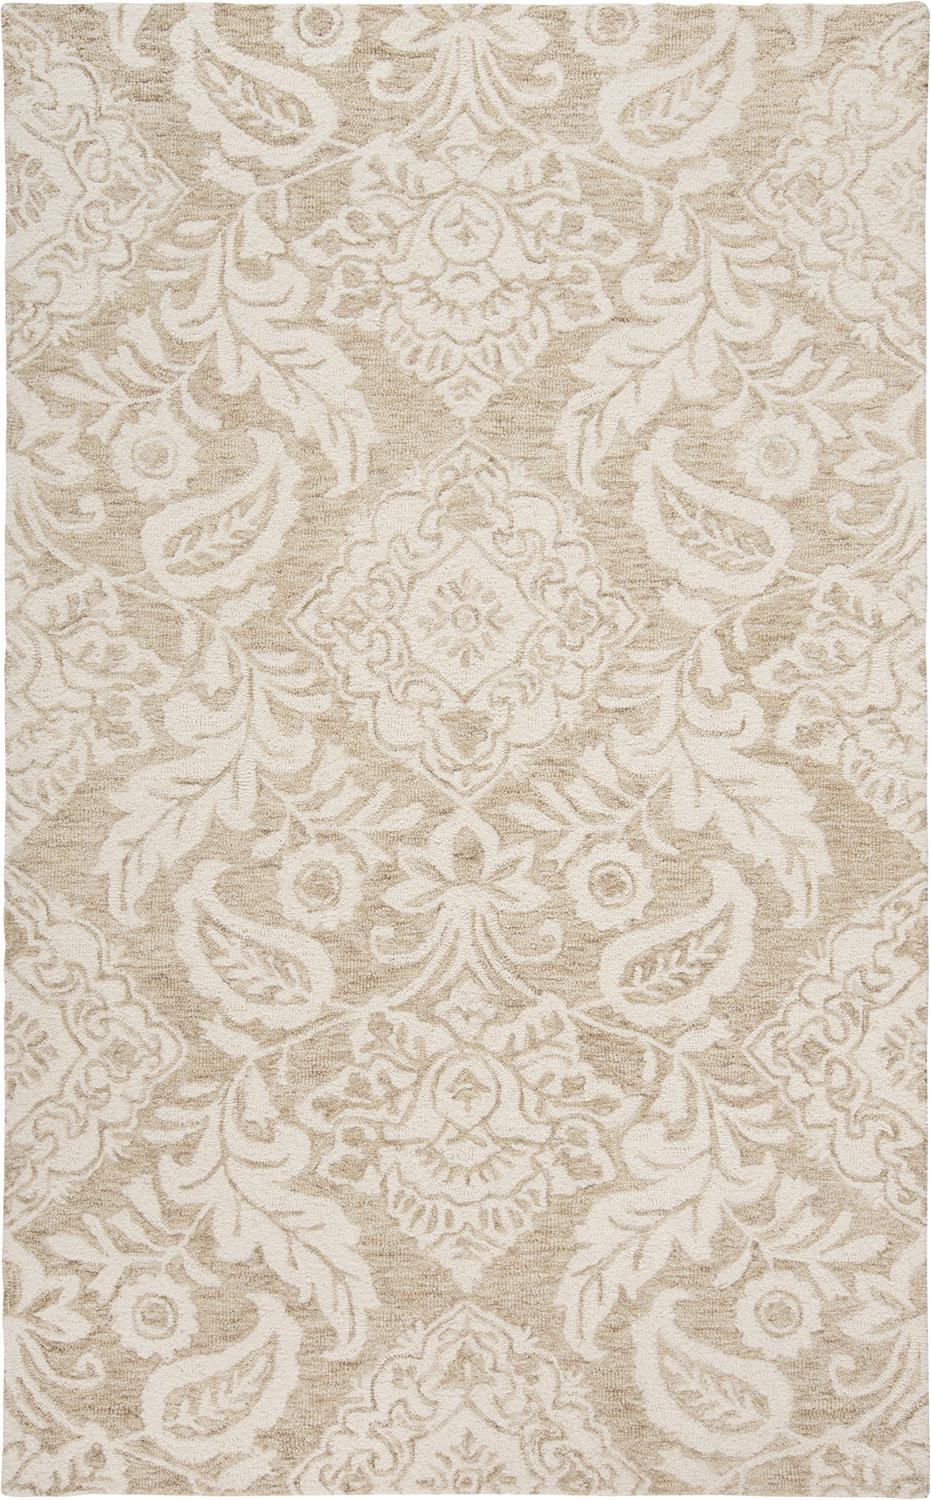 Belfort 8776F in TAUPE/IVORY